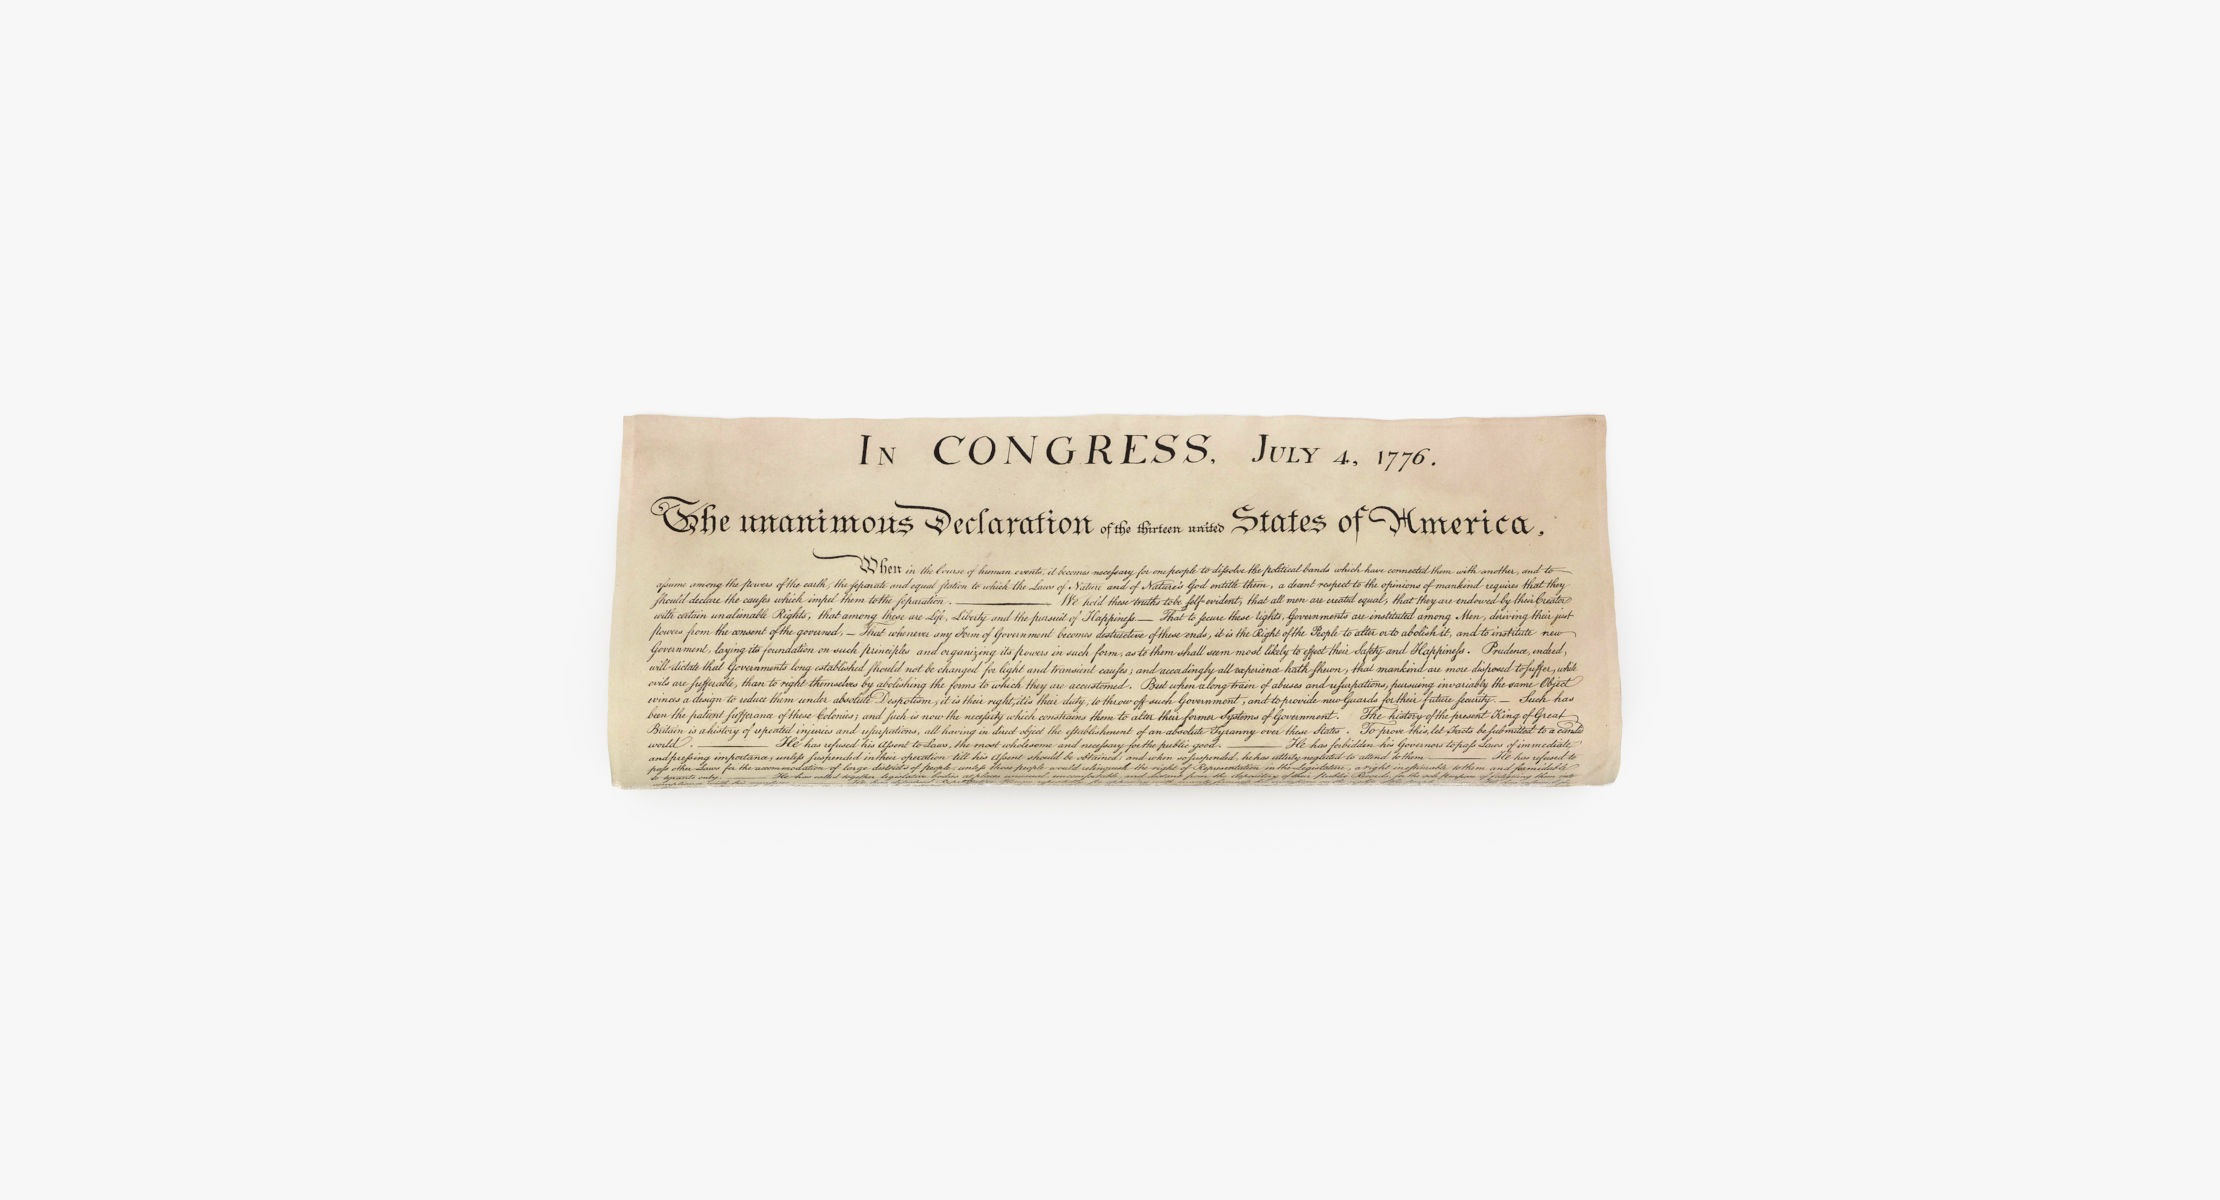 Declaration of Independence Rolled - reel 1